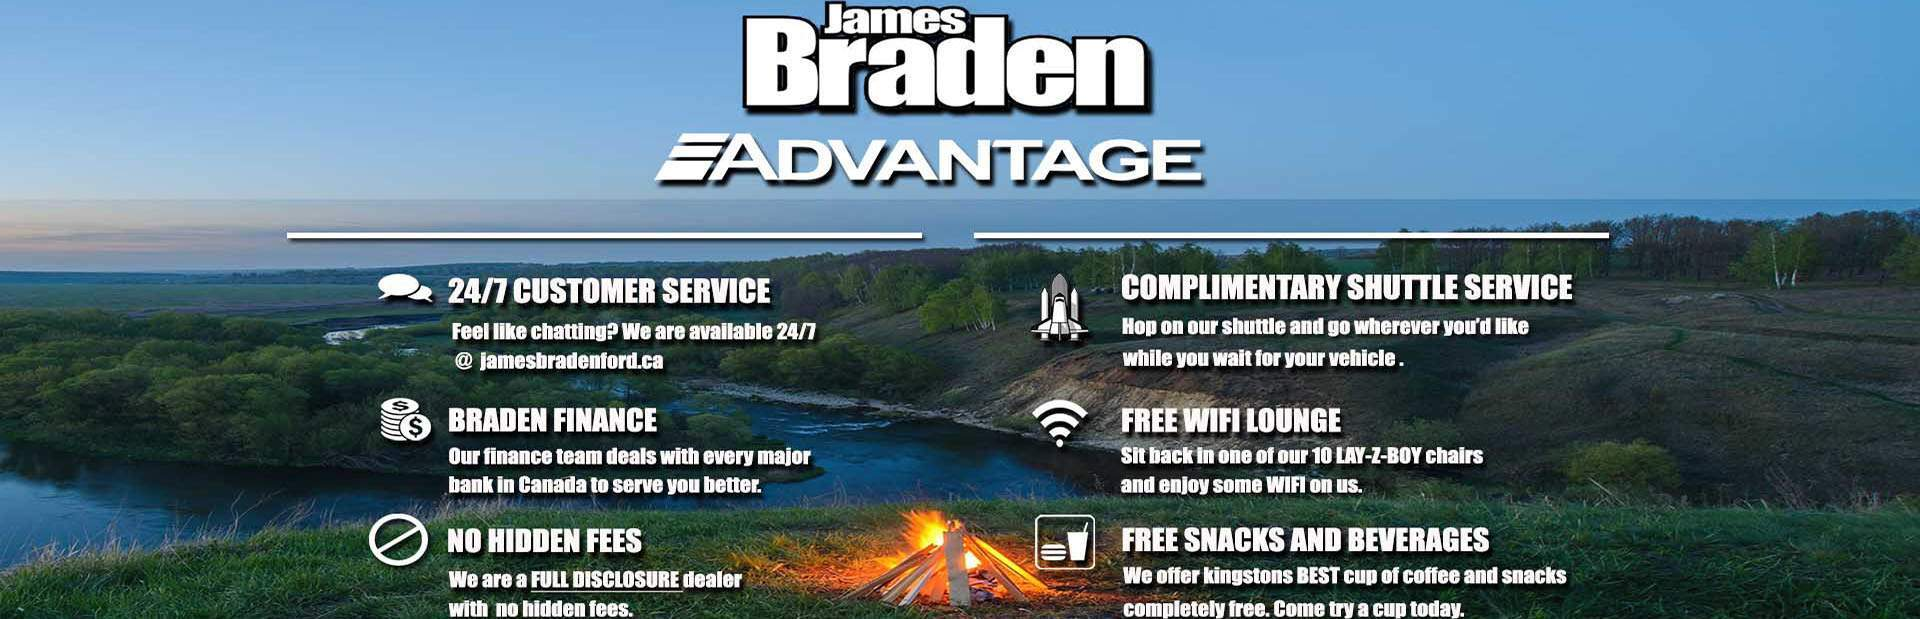 BRADEN ADVANTAGE & Ford Dealership Kingston ON | Used Cars James Braden Ford markmcfarlin.com